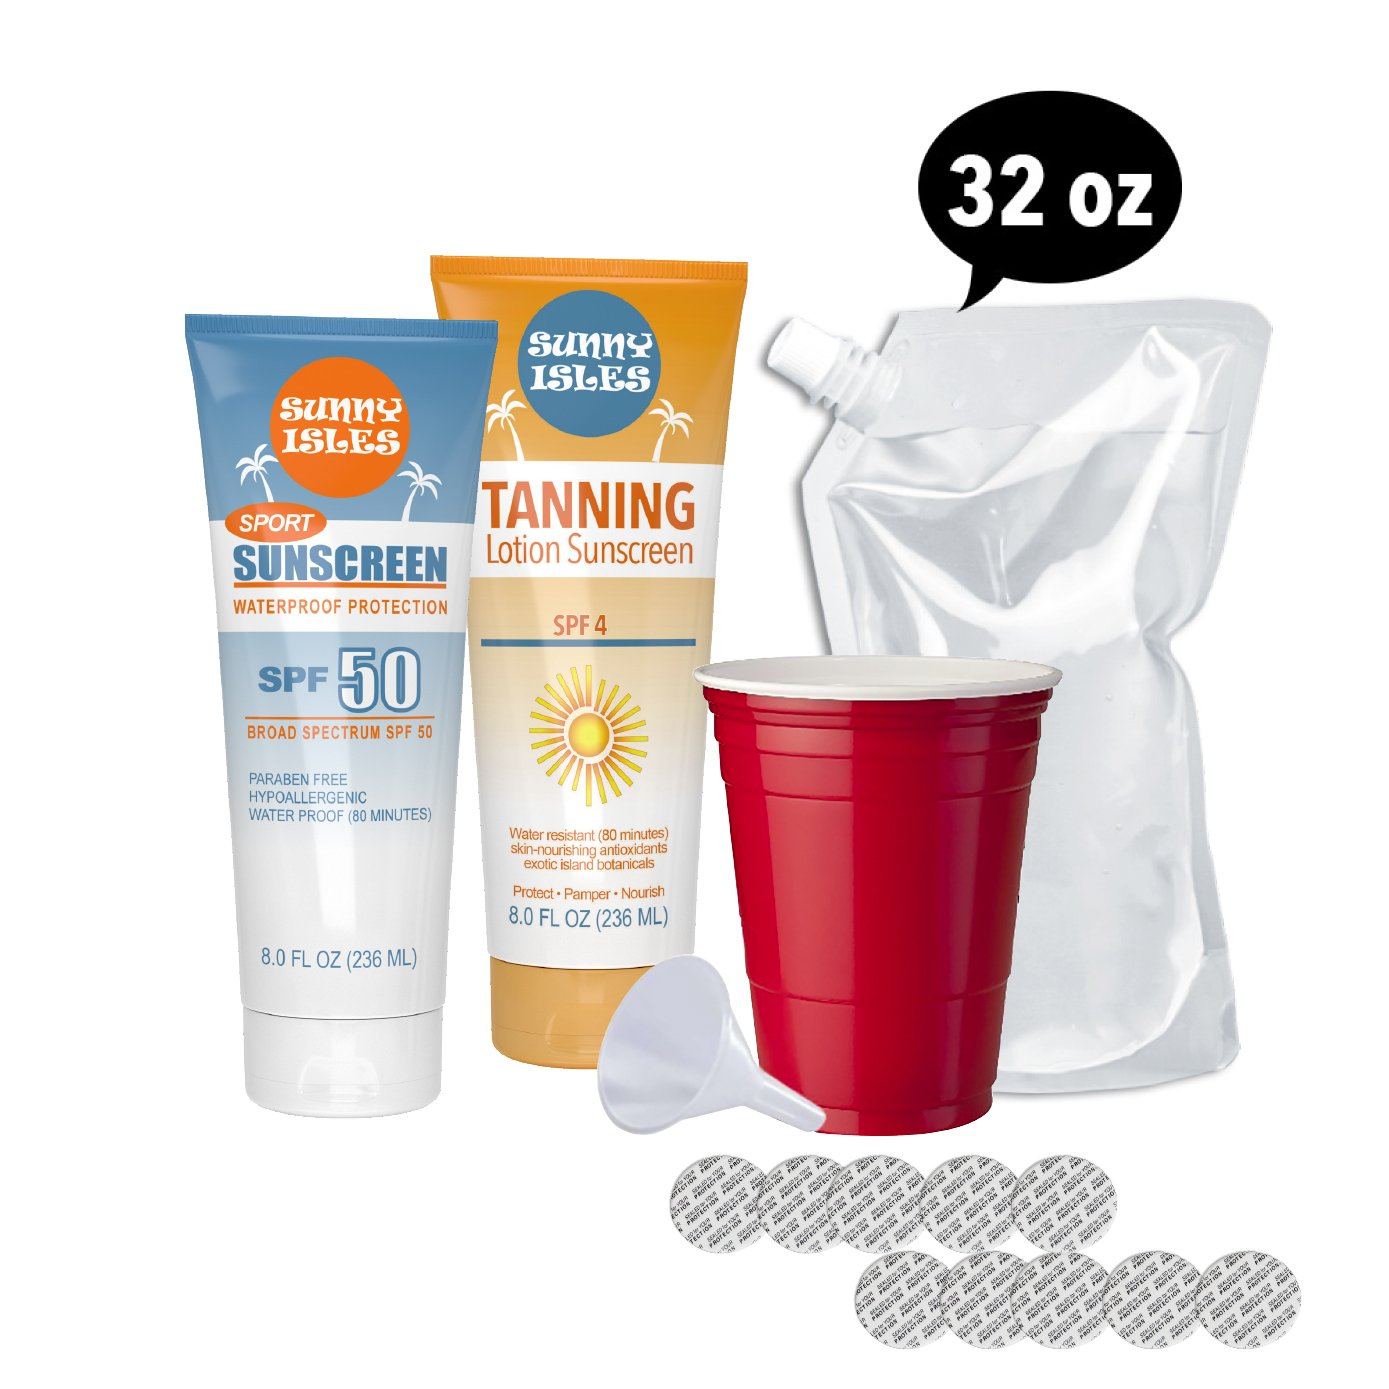 Hidden Flask - Sunscreen and Tanning Lotion Set - Includes 2 8oz Tubes, Funnel, 10 Seals, and 1 Free 32oz Cruise Flask (Sunscreen and Tanning Lotion Set) by Cruise Flask® (Image #1)